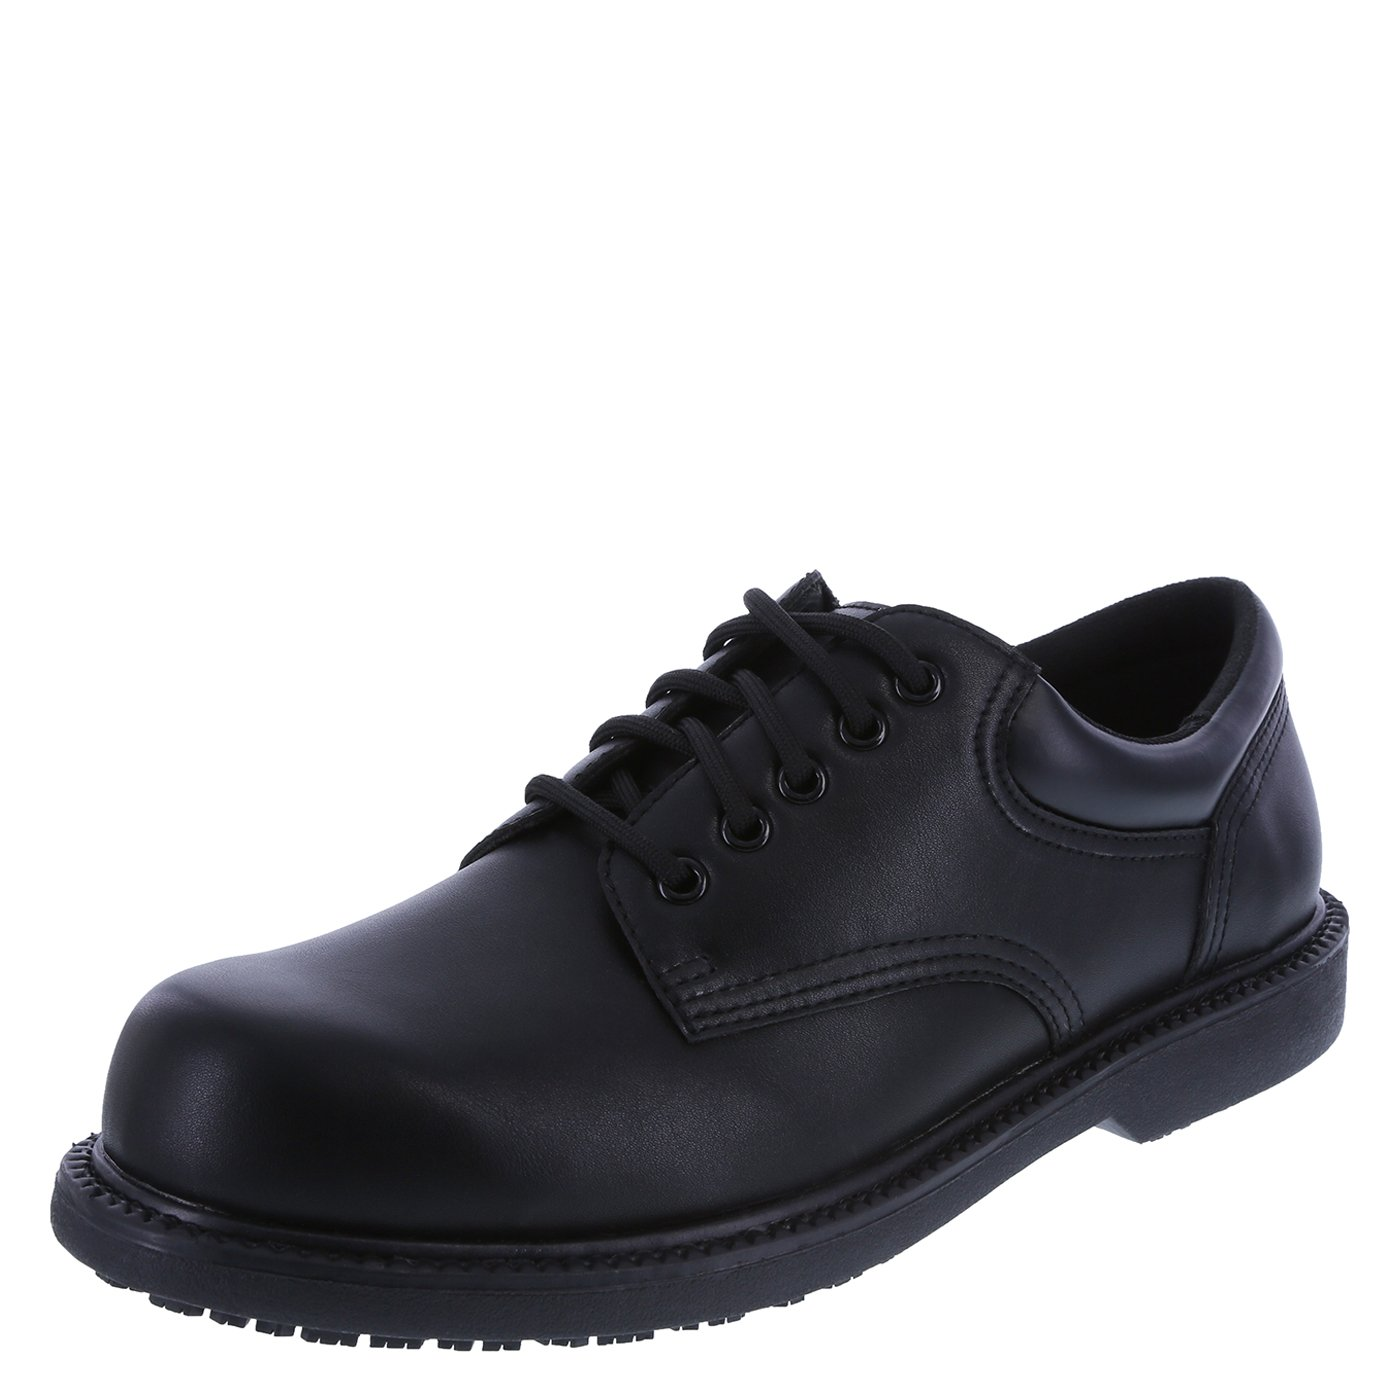 safeTstep Slip Resistant Men's Black Men's Manager Oxford 10 Regular by safeTstep